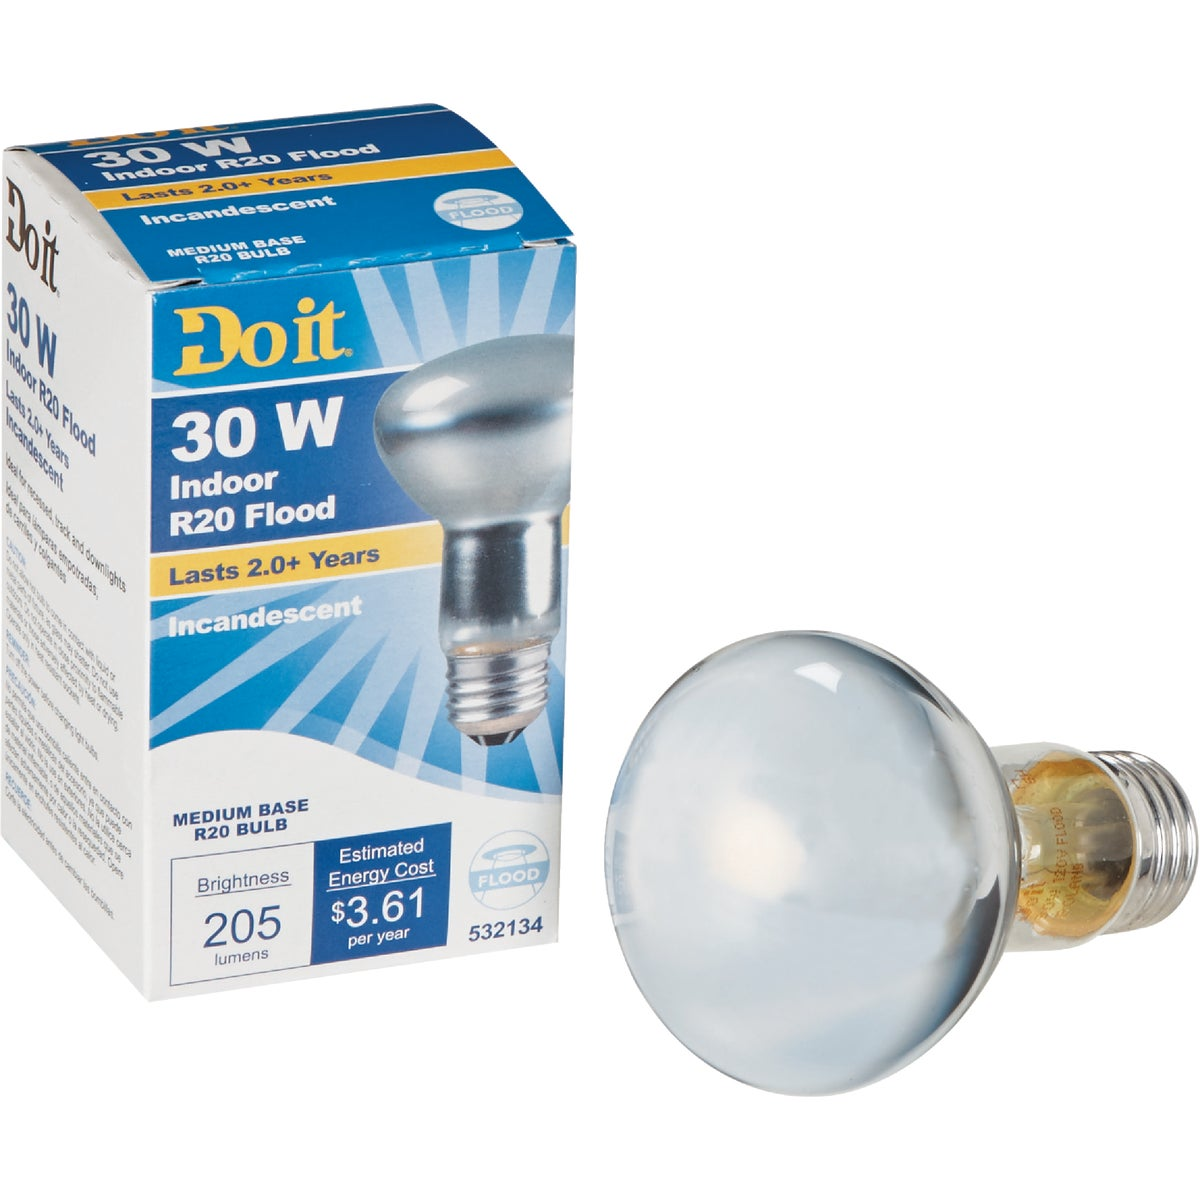 30W R20 REFLECTOR BULB - 18387 by G E Private Label